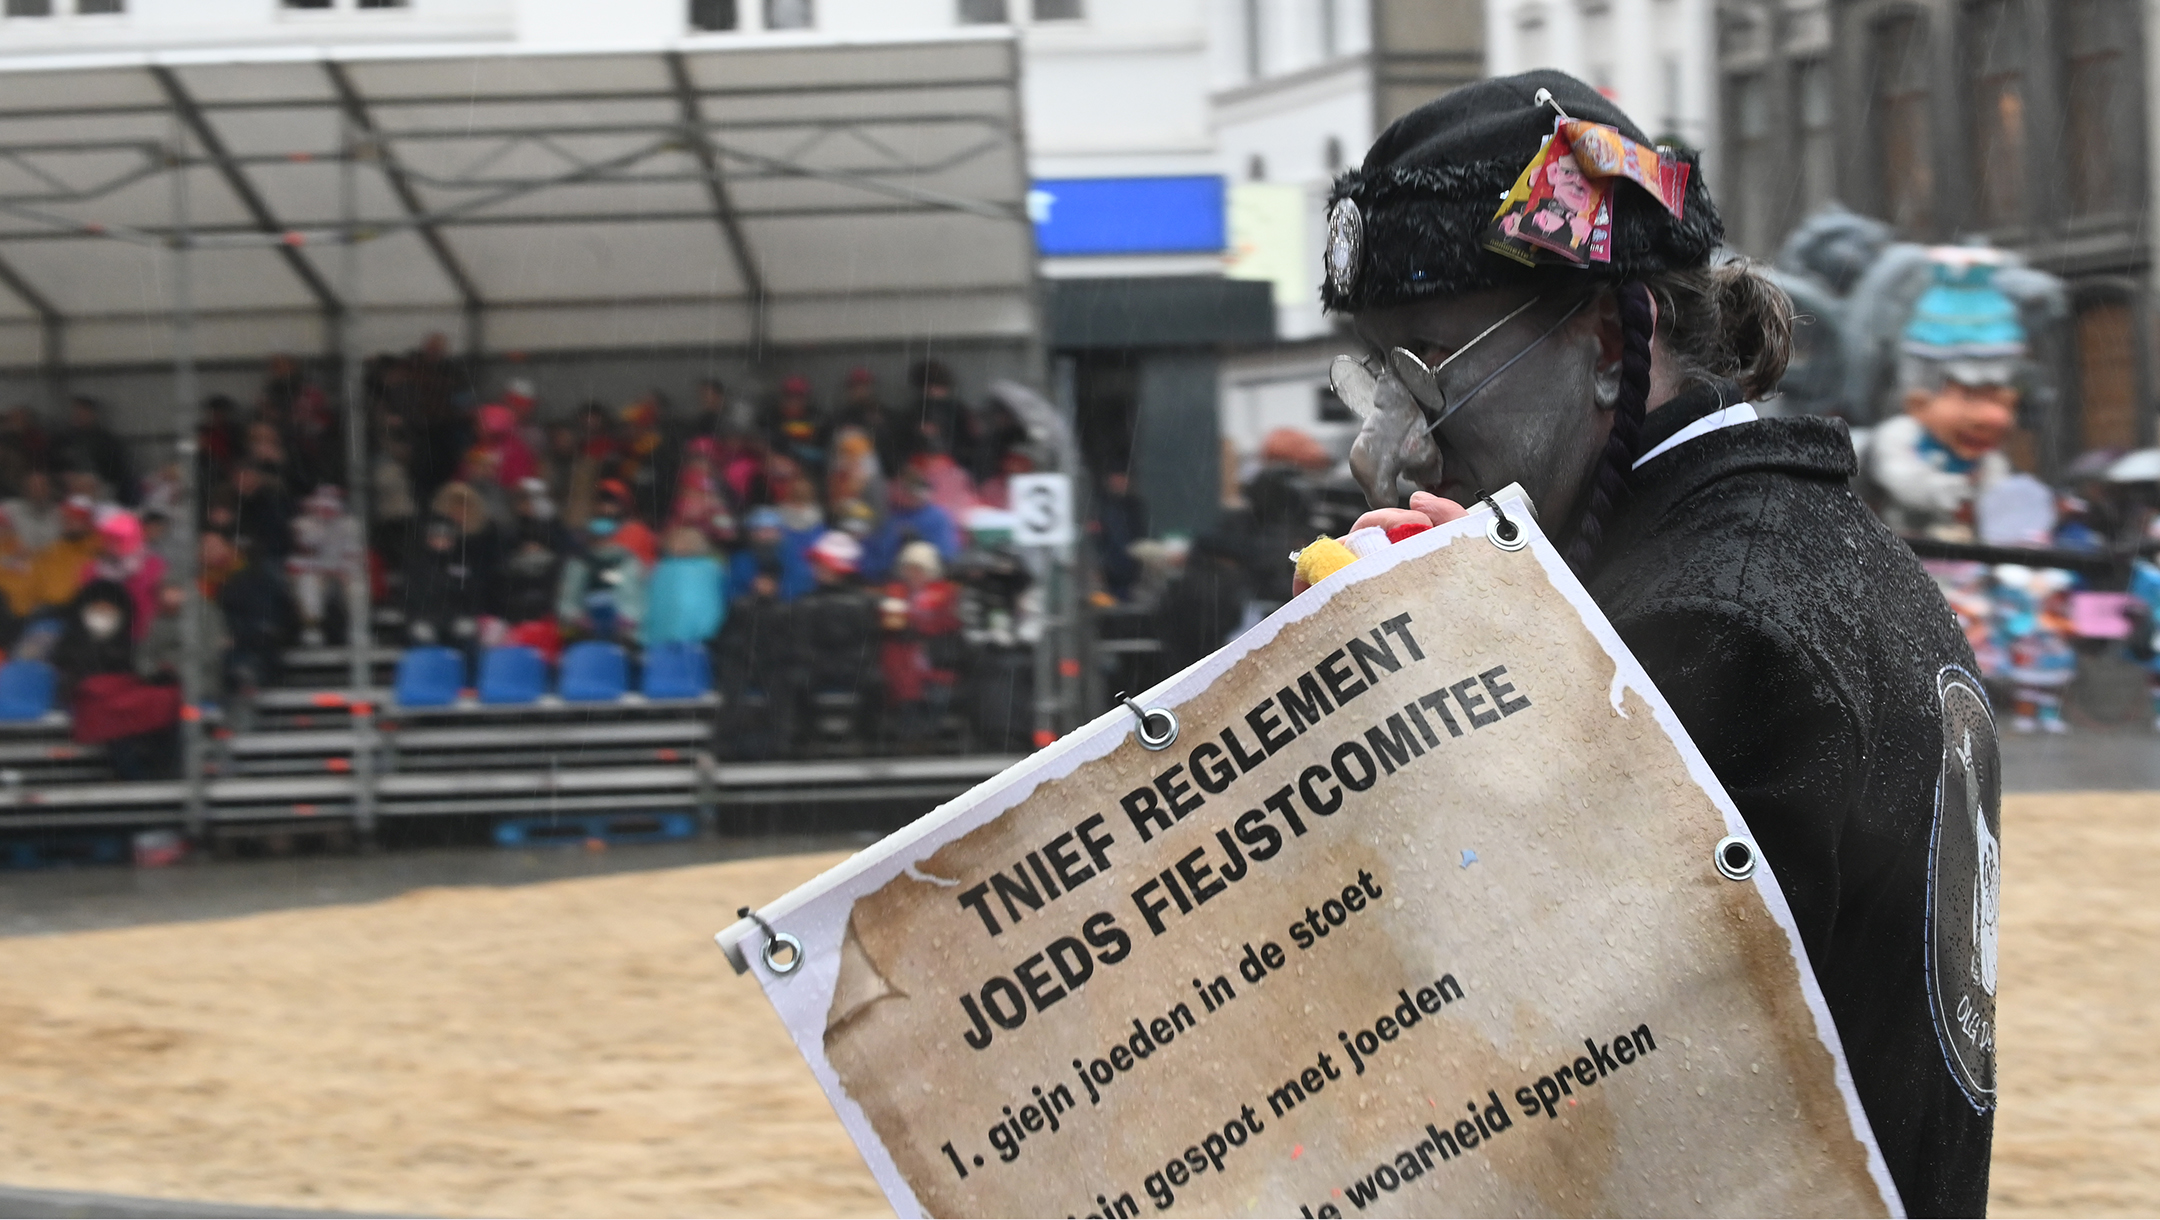 COVID-19 comment spurs an anti-Semitism complaint filed against head of Belgium's Jew-mocking Aalst carnival